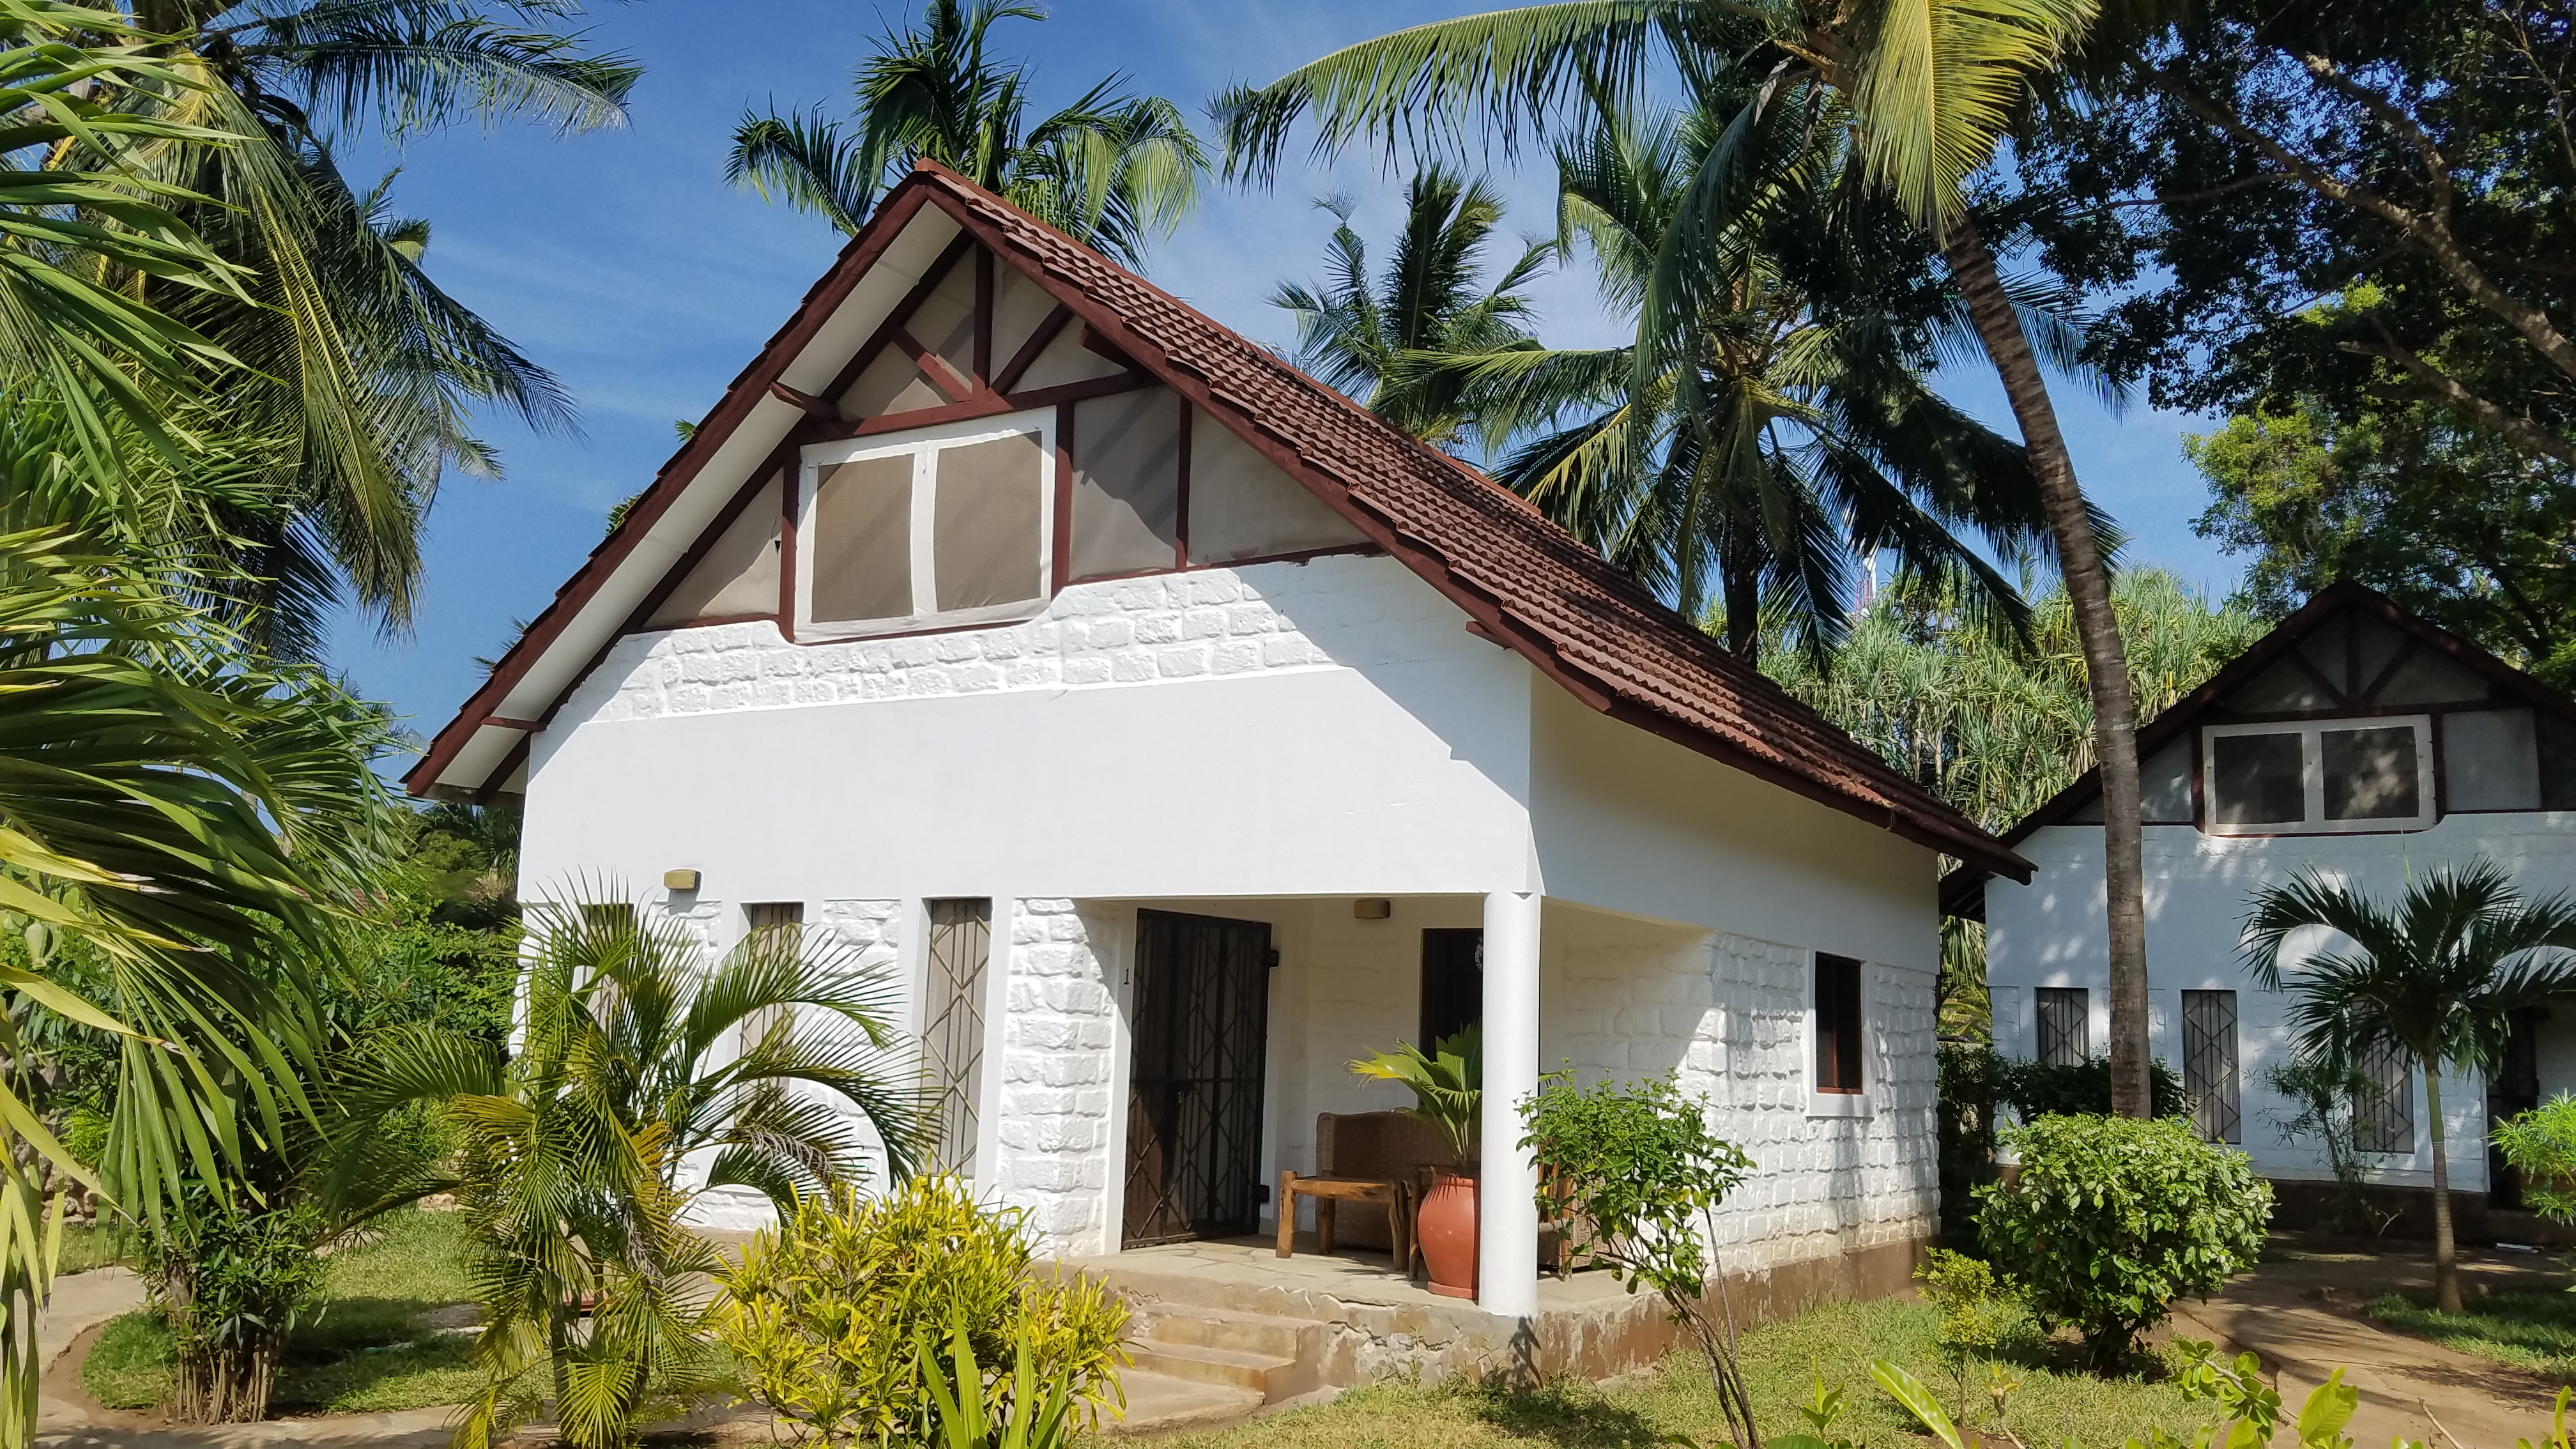 Self Catering Cottage In Diani Diani Beach Kenya Property Diani Beach Cottages Diani Beach